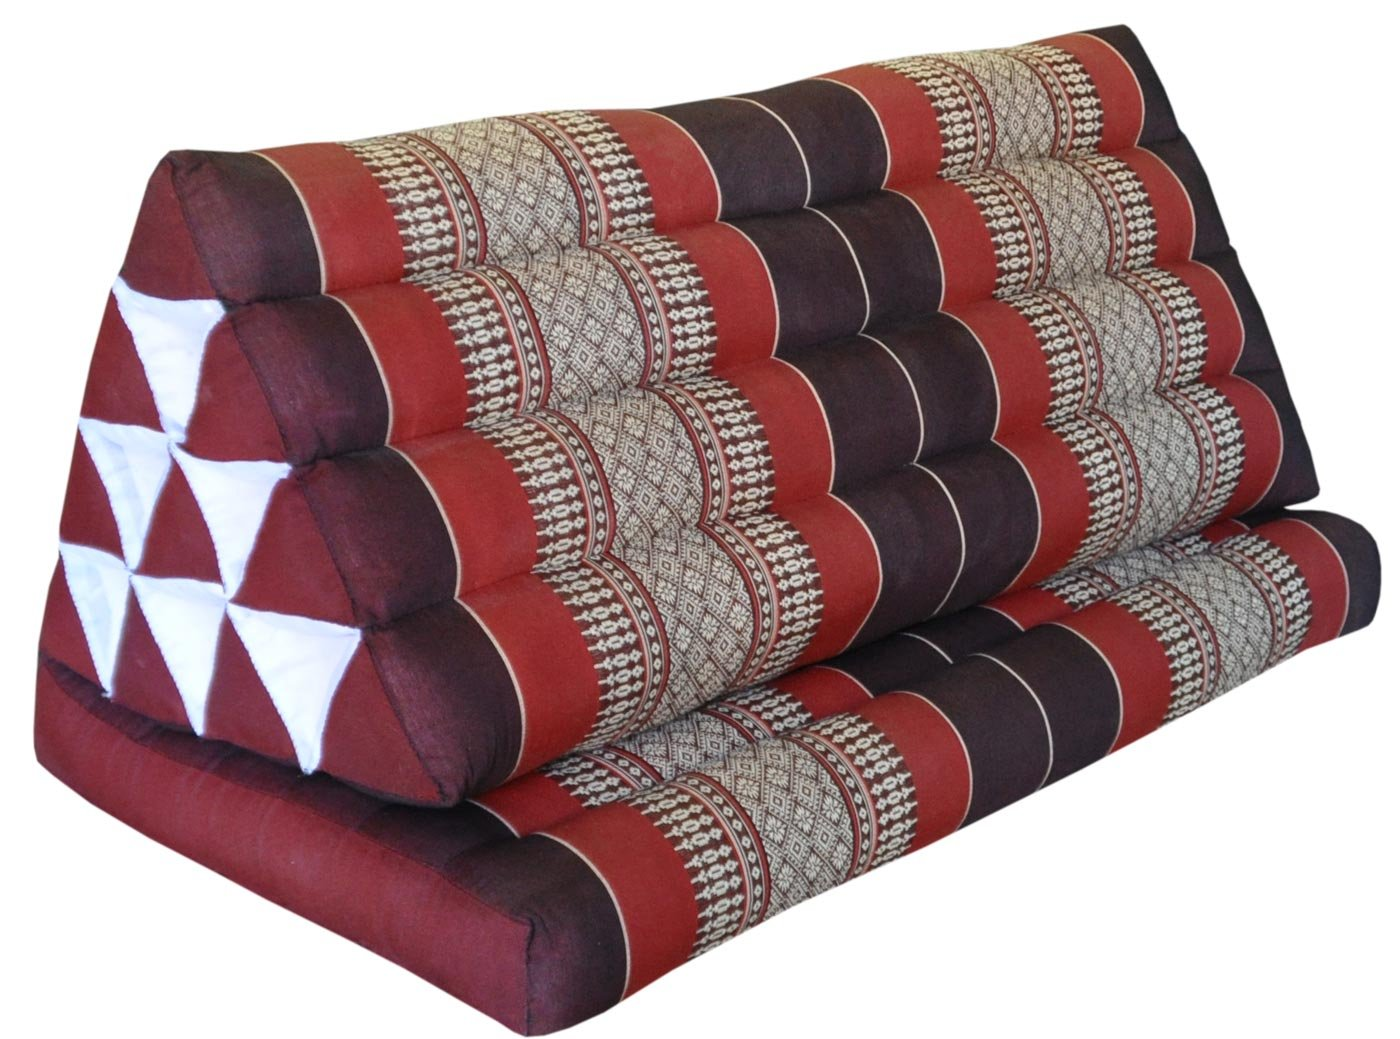 Thai triangle cushion XXL, with 1 folding seat, burgundy/red, sofa, relaxation, beach, pool, meditation, yoga, made in Thailand. (82316)